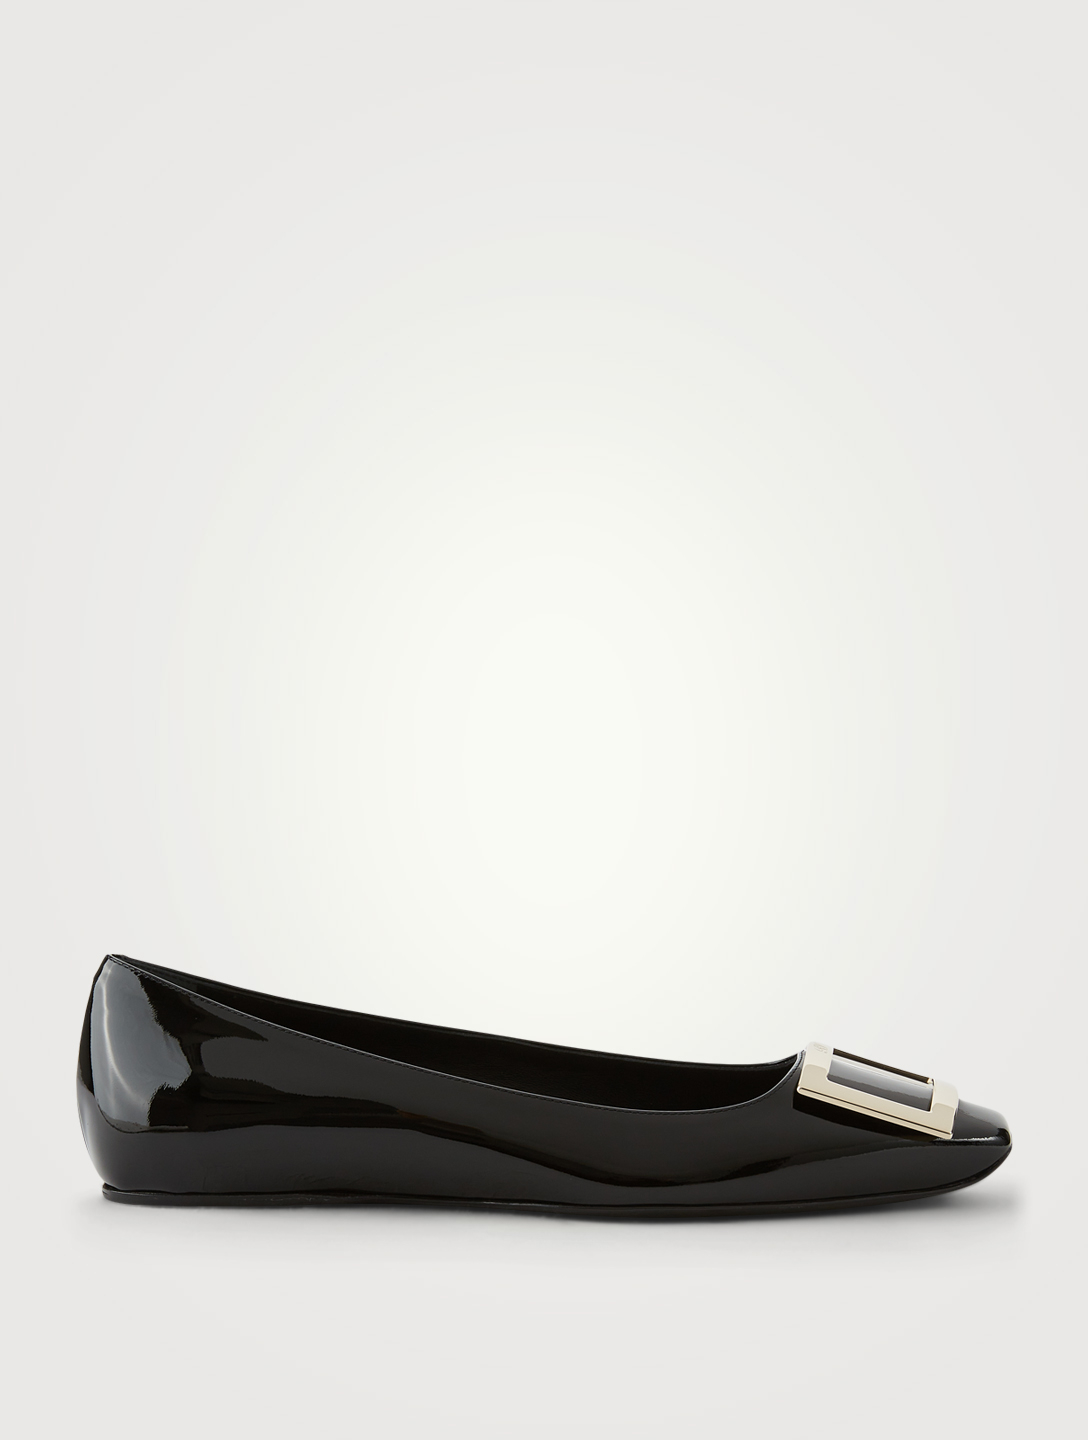 ROGER VIVIER Trompette Patent Leather Ballet Flats Women's Black